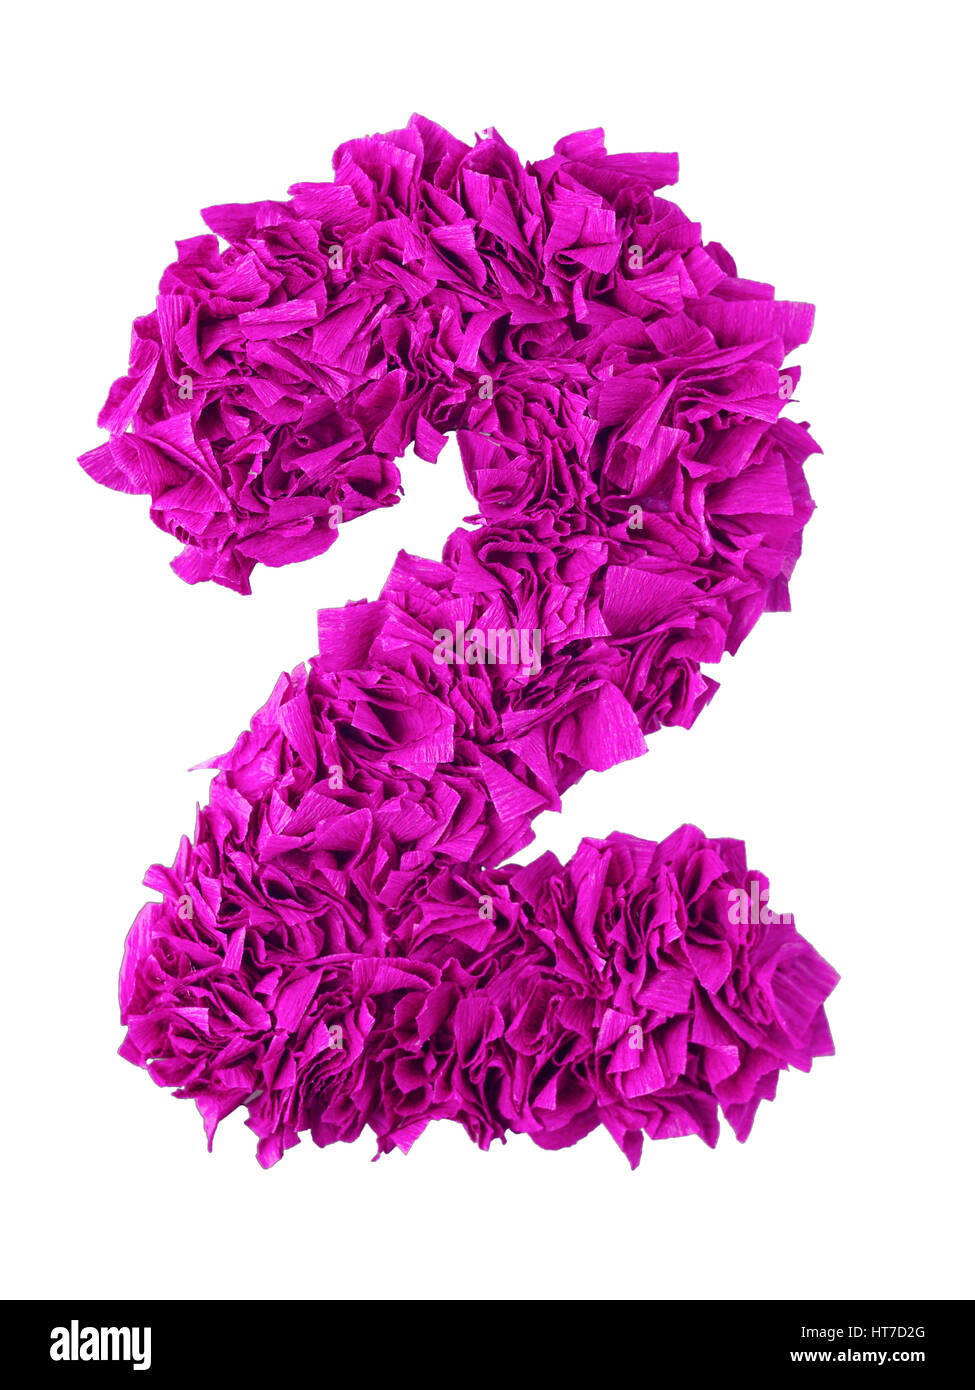 Two. Handmade number 2 from magenta color crepe paper isolated on white background. Set of pink numbers from scraps - Stock Image